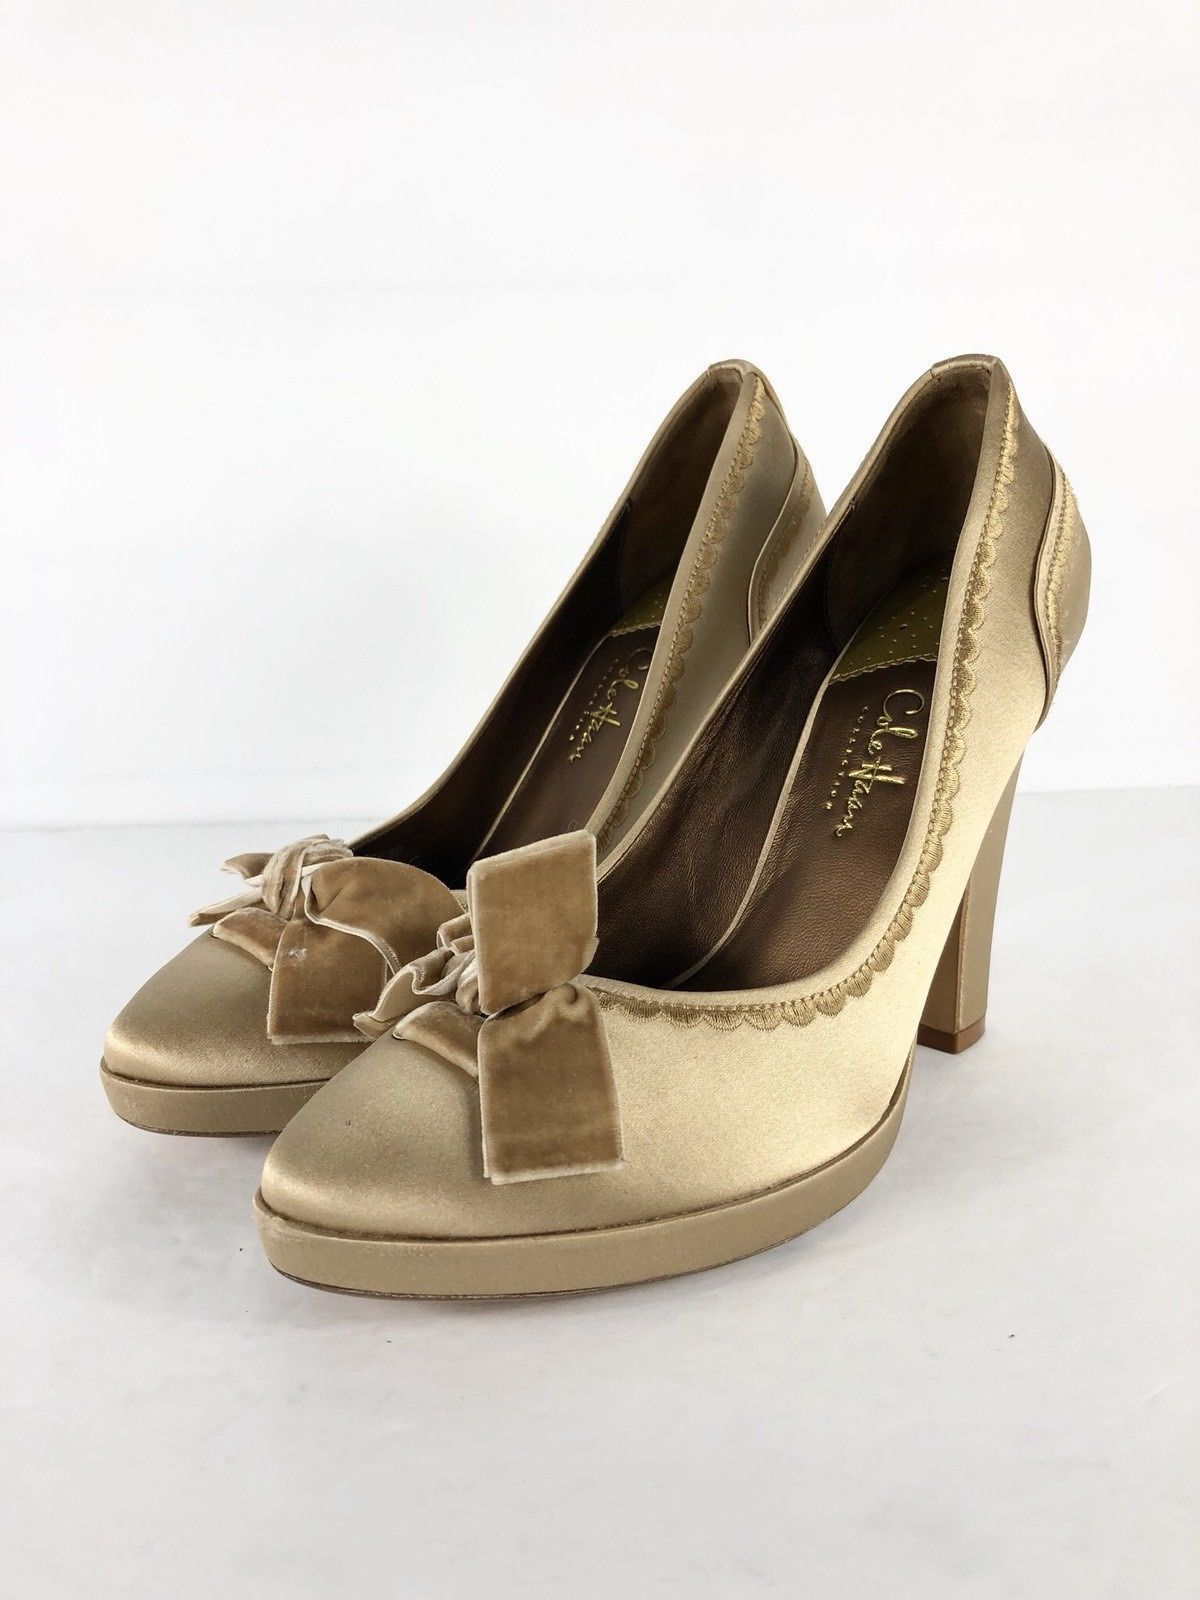 9f3d1a0f158 S l1600. S l1600. Previous. Cole Haan Collection Anabel Womens Pump High  Heels Tan Gold Satin Bow Sz ...